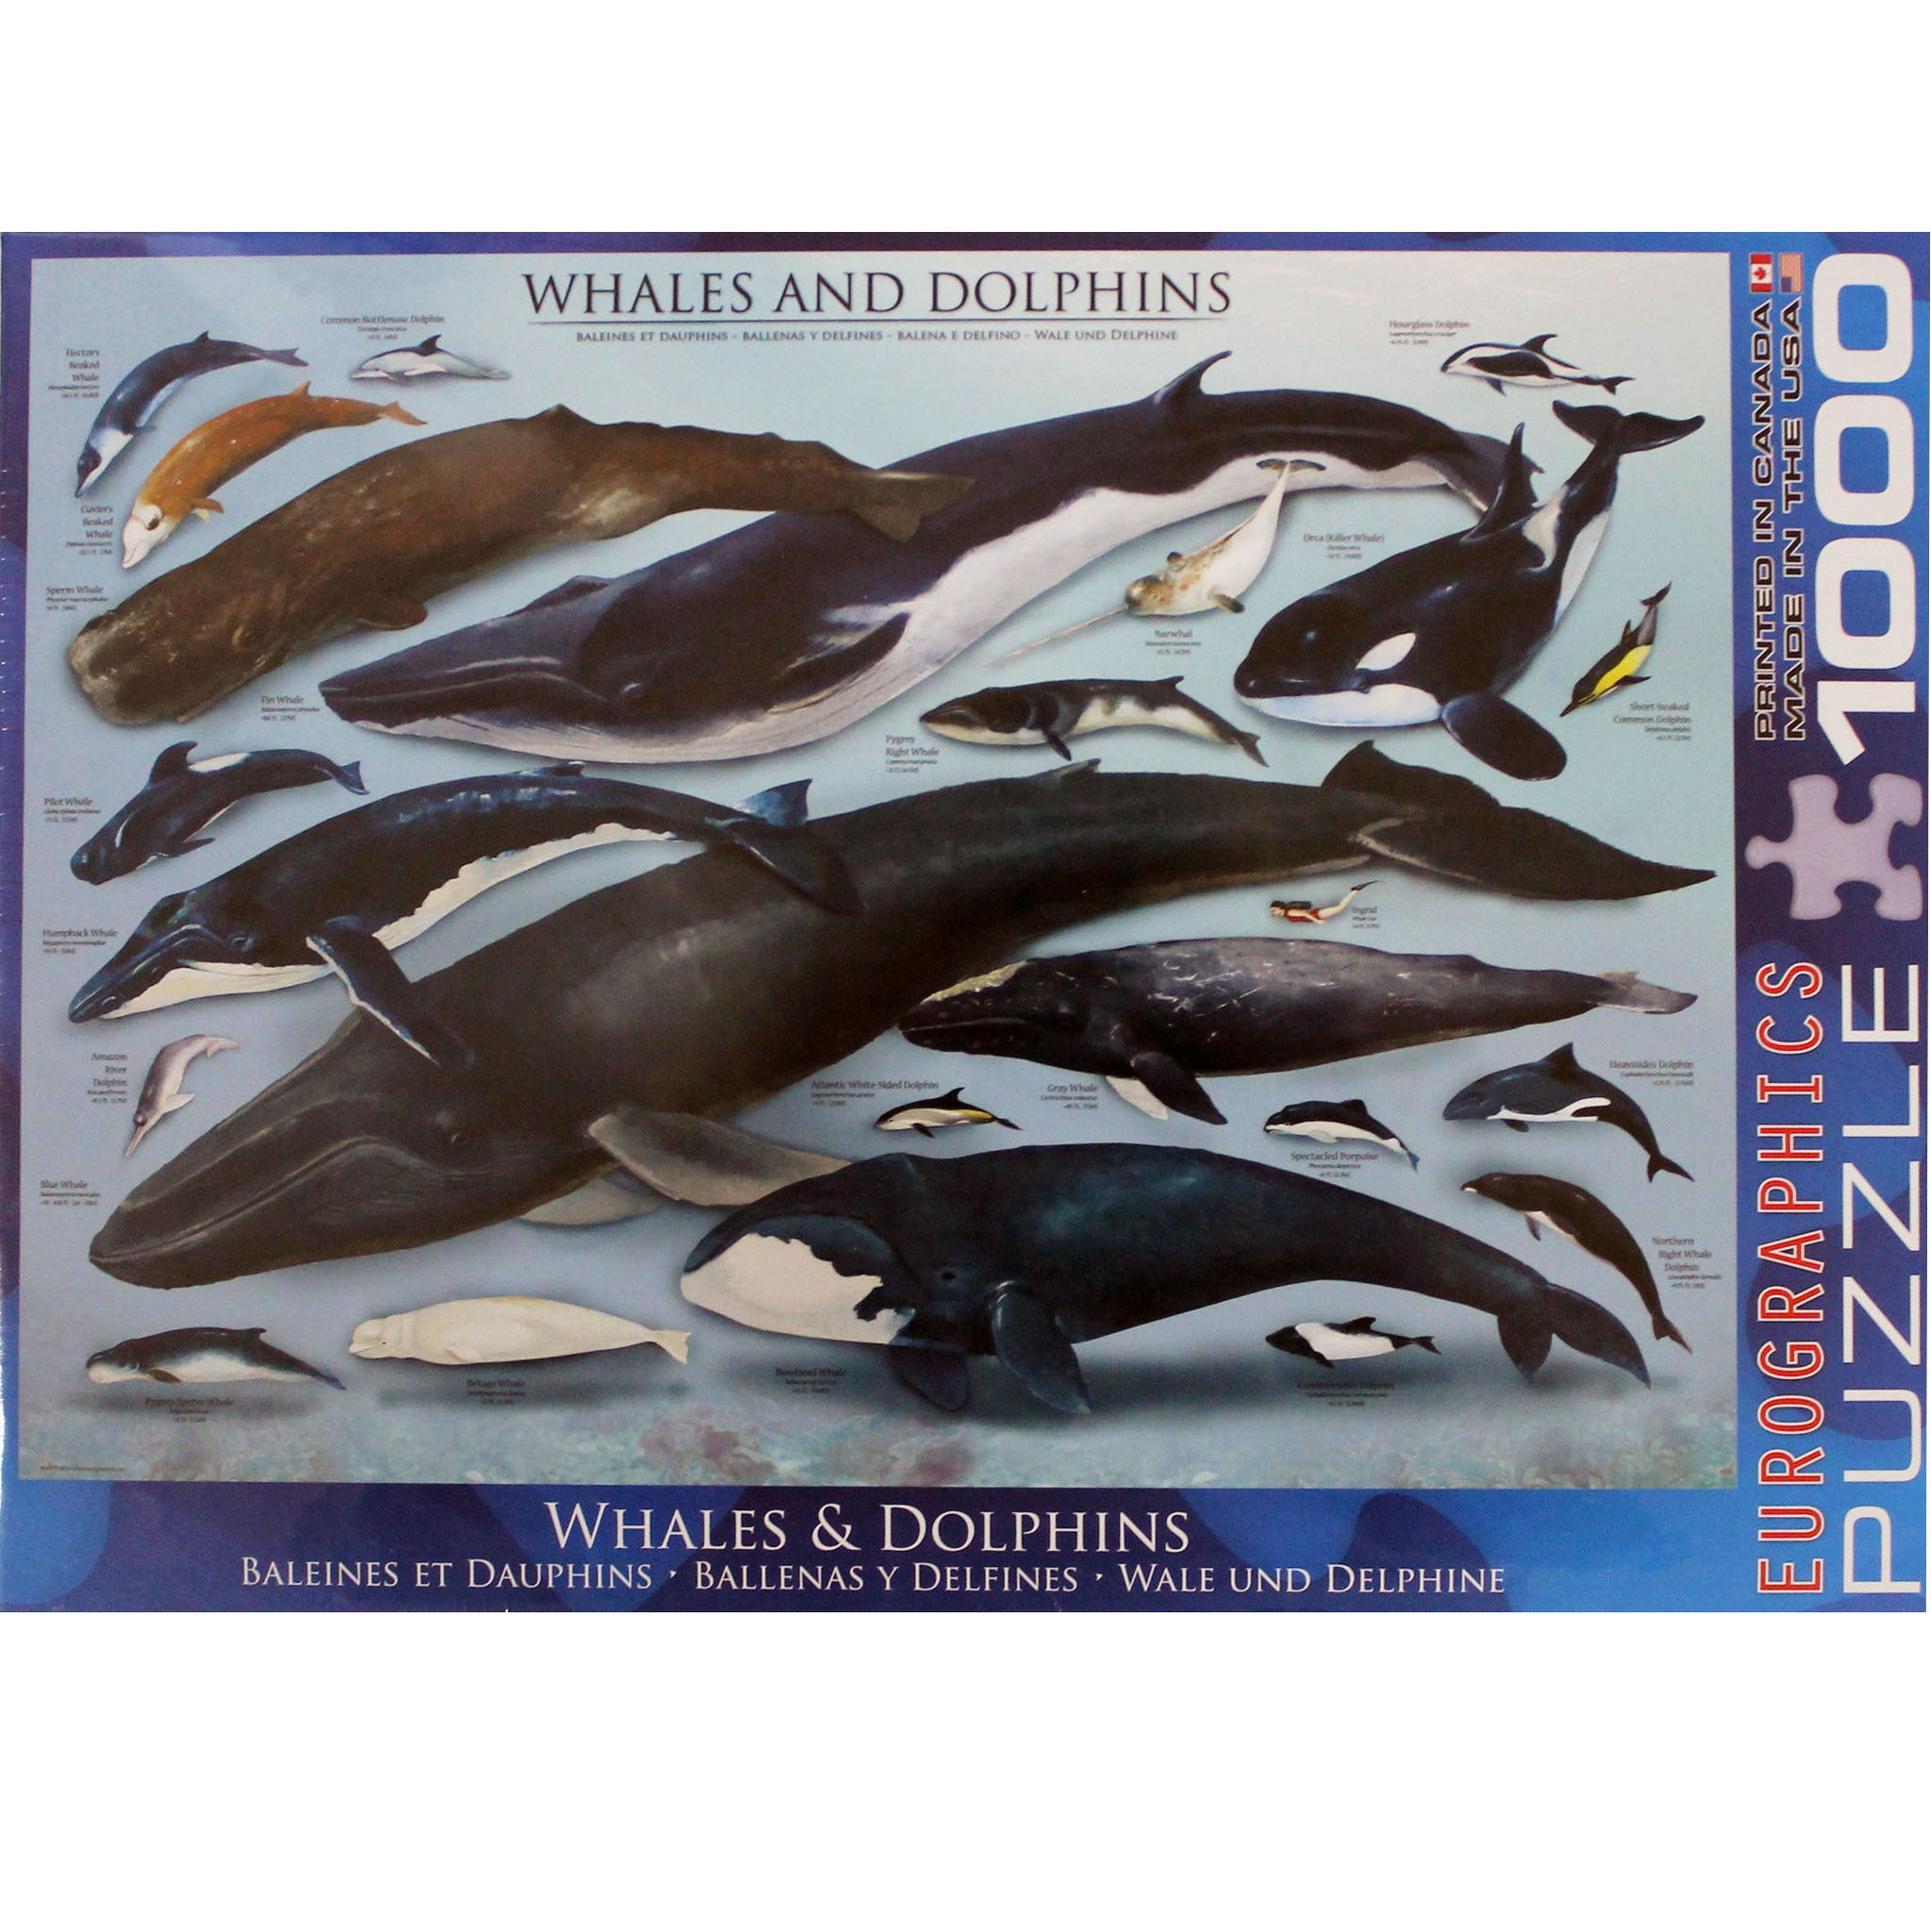 Whales & Dolphins Puzzle: 1000 piece